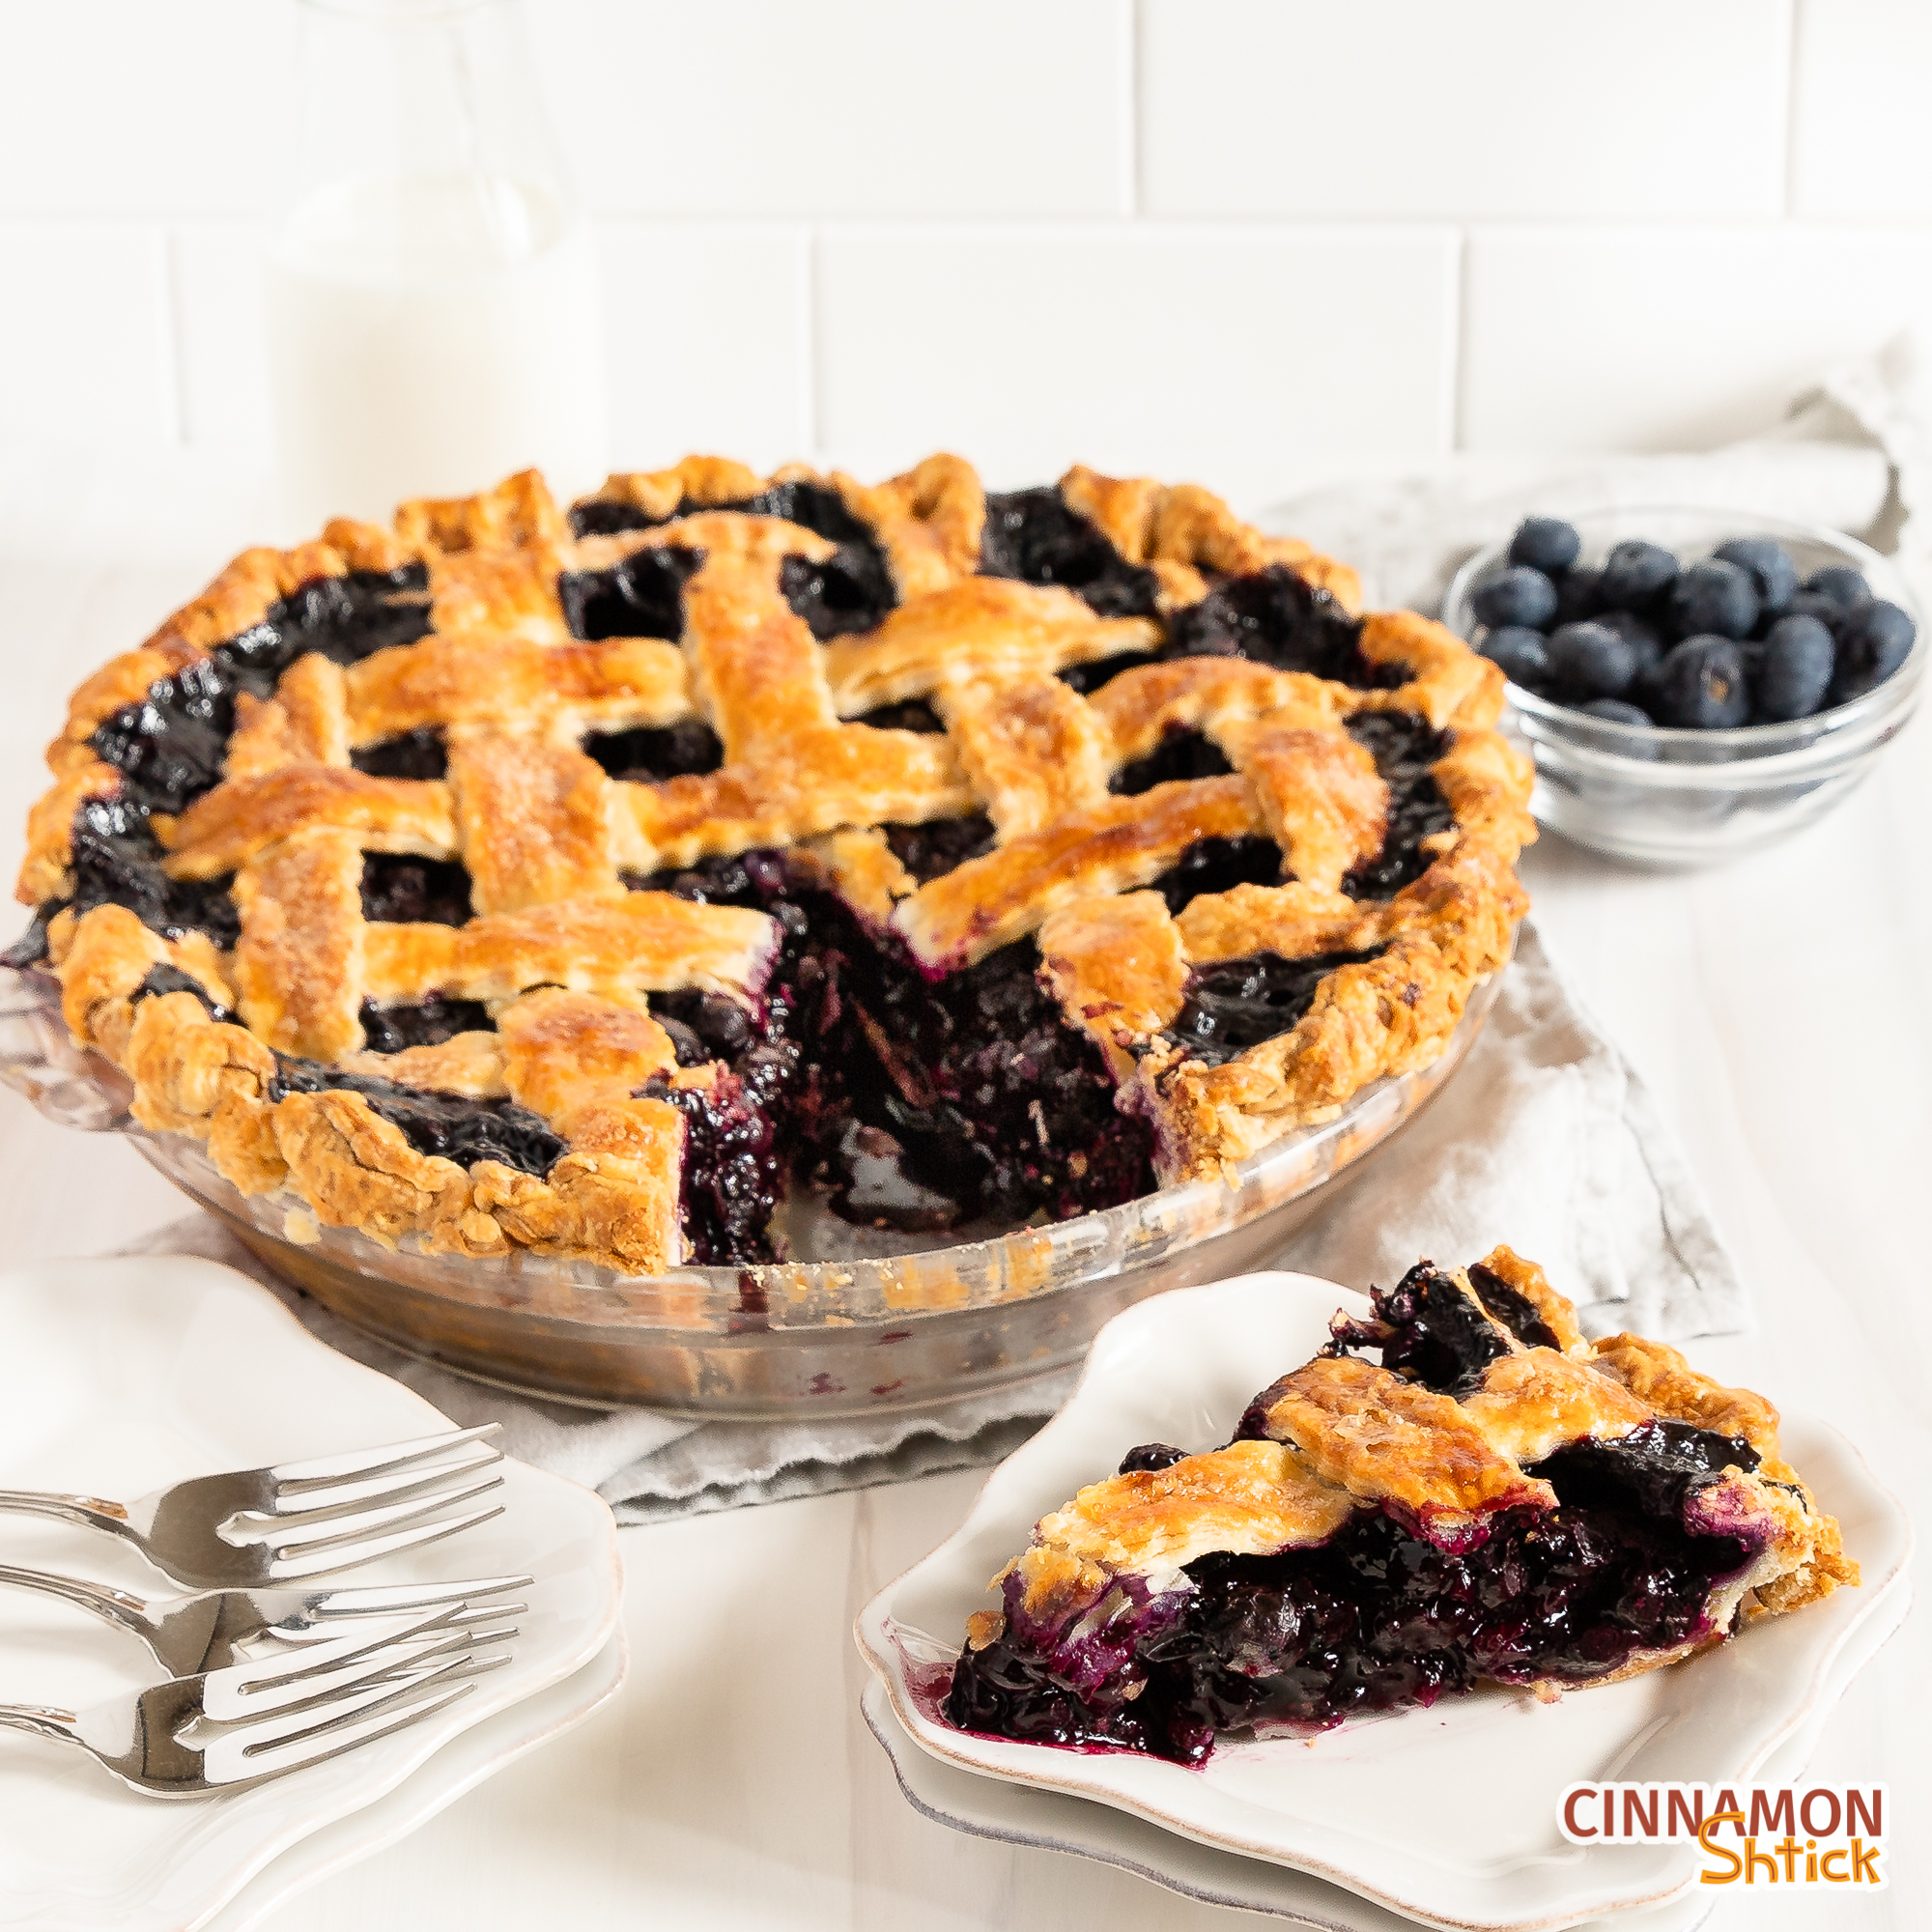 slice of blueberry pie on a plate with rest of pie behind it